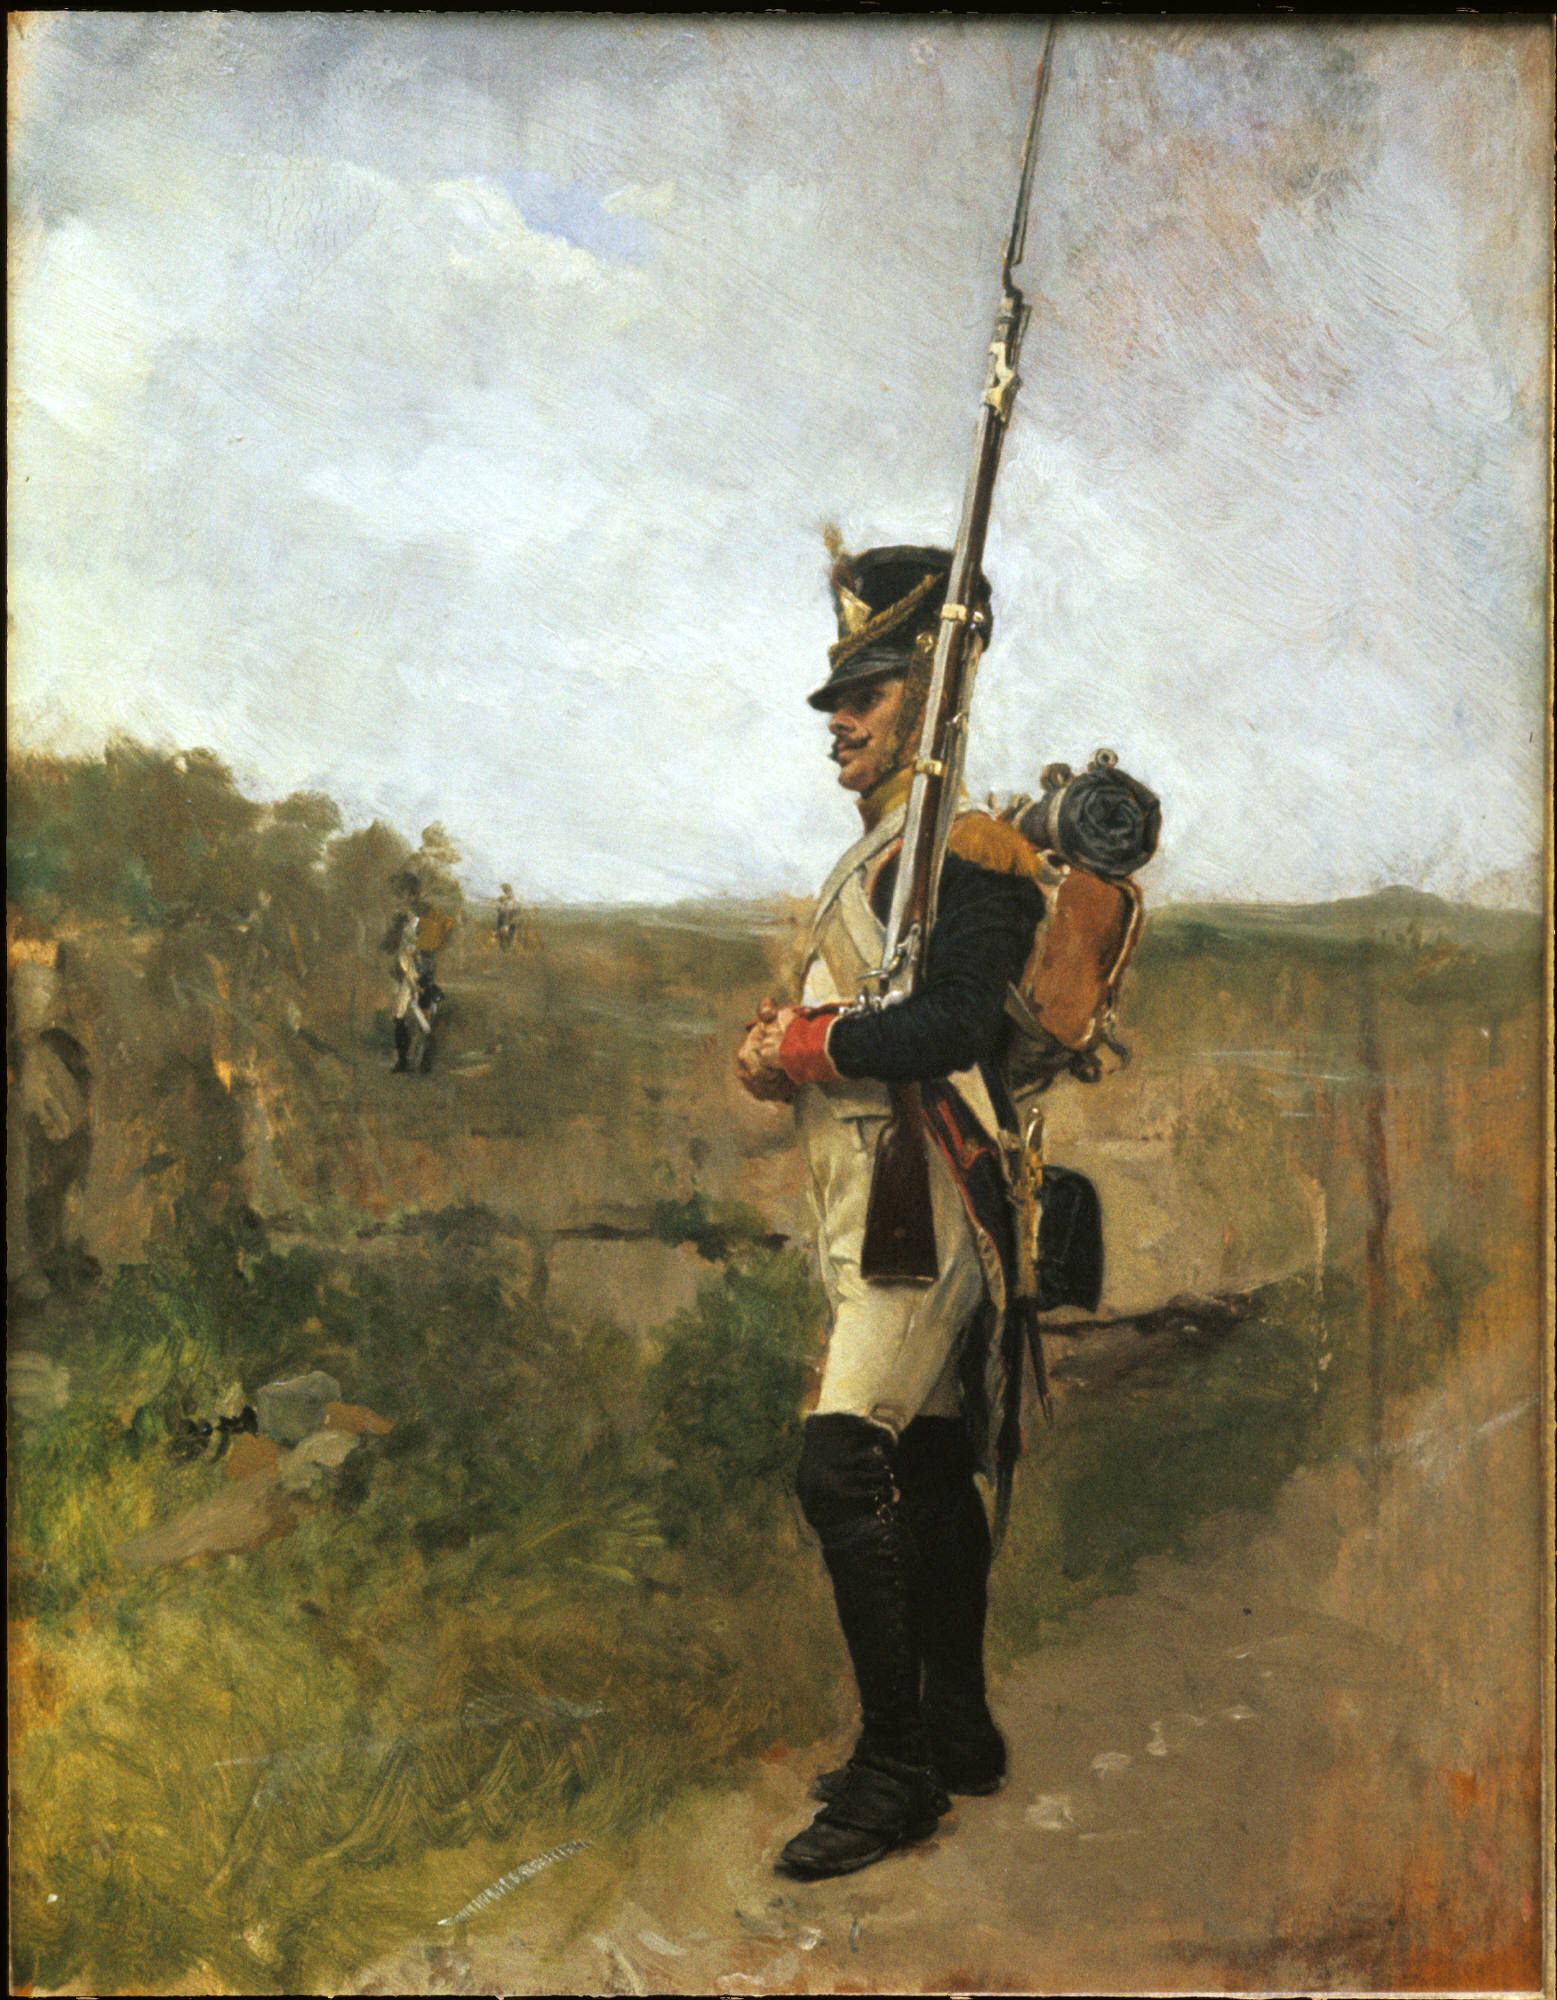 Jean Louis Ernest Meissonier, French, 1815-1891: The Sentry (La Vedette), 1890 (y1957-62). Photo: Bruce M. White.